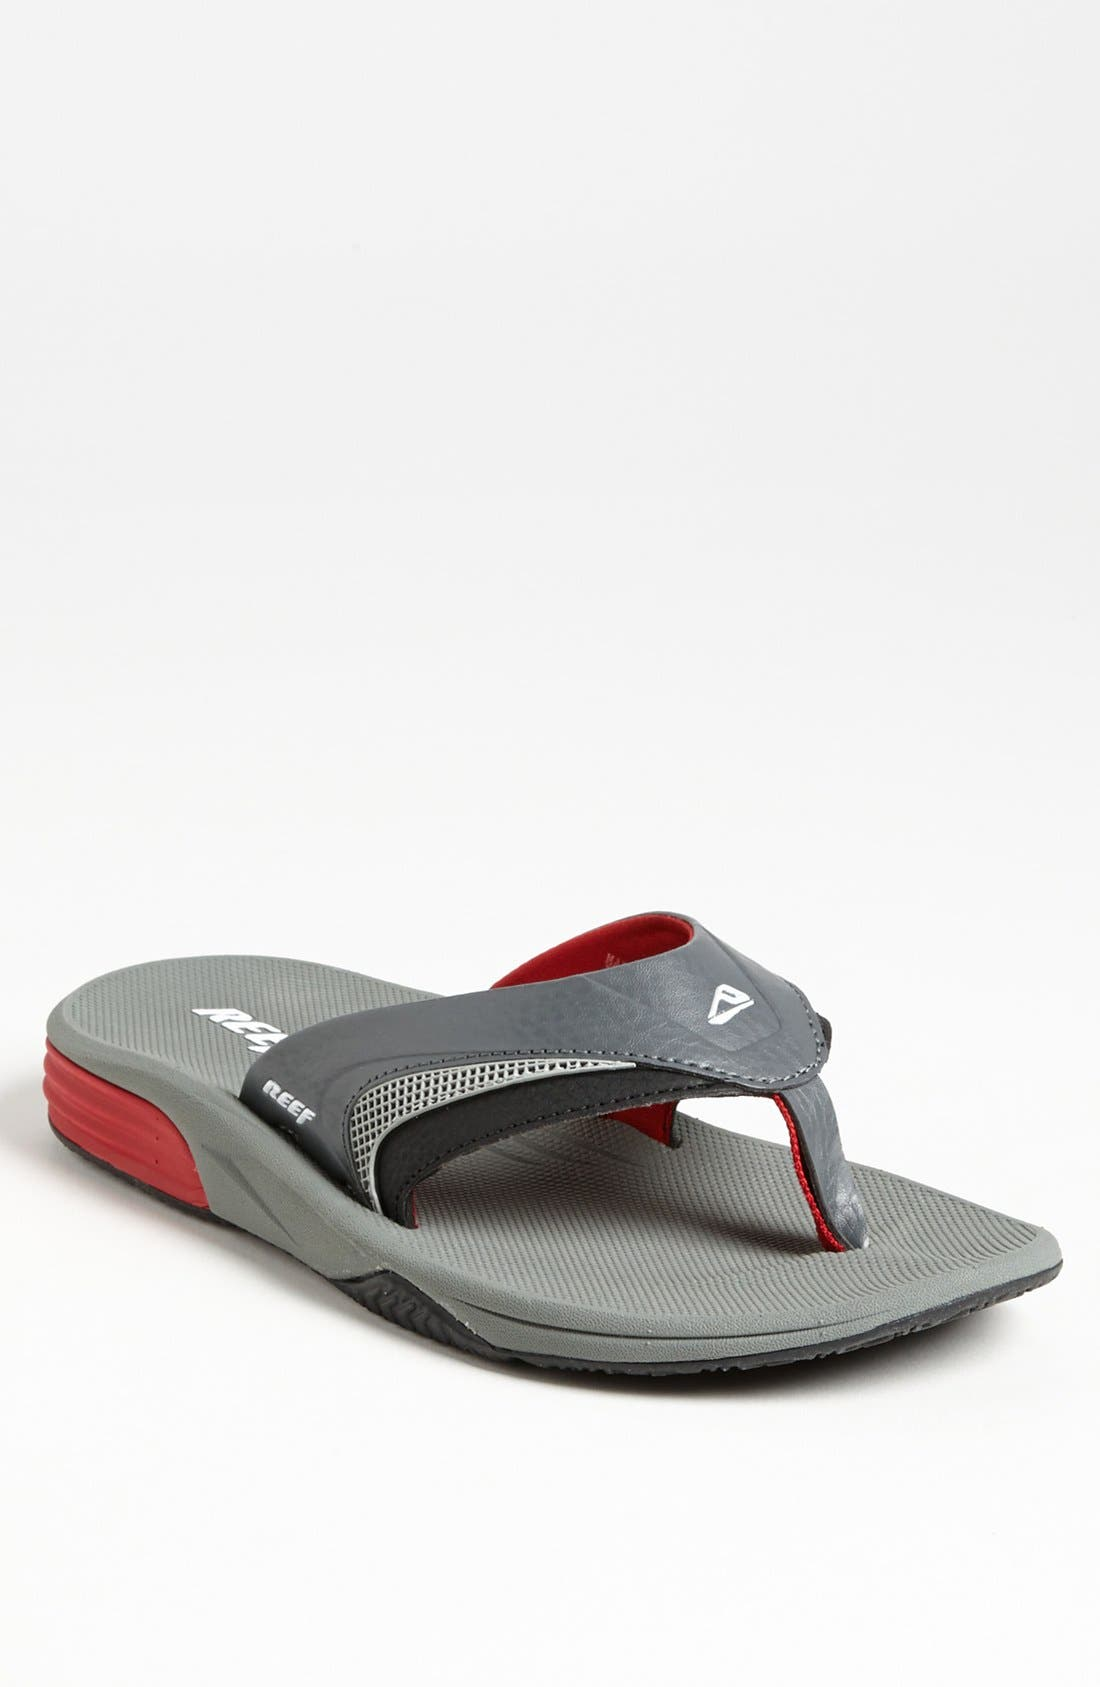 Main Image - Reef 'Phantom Player' Flip Flop (Men)